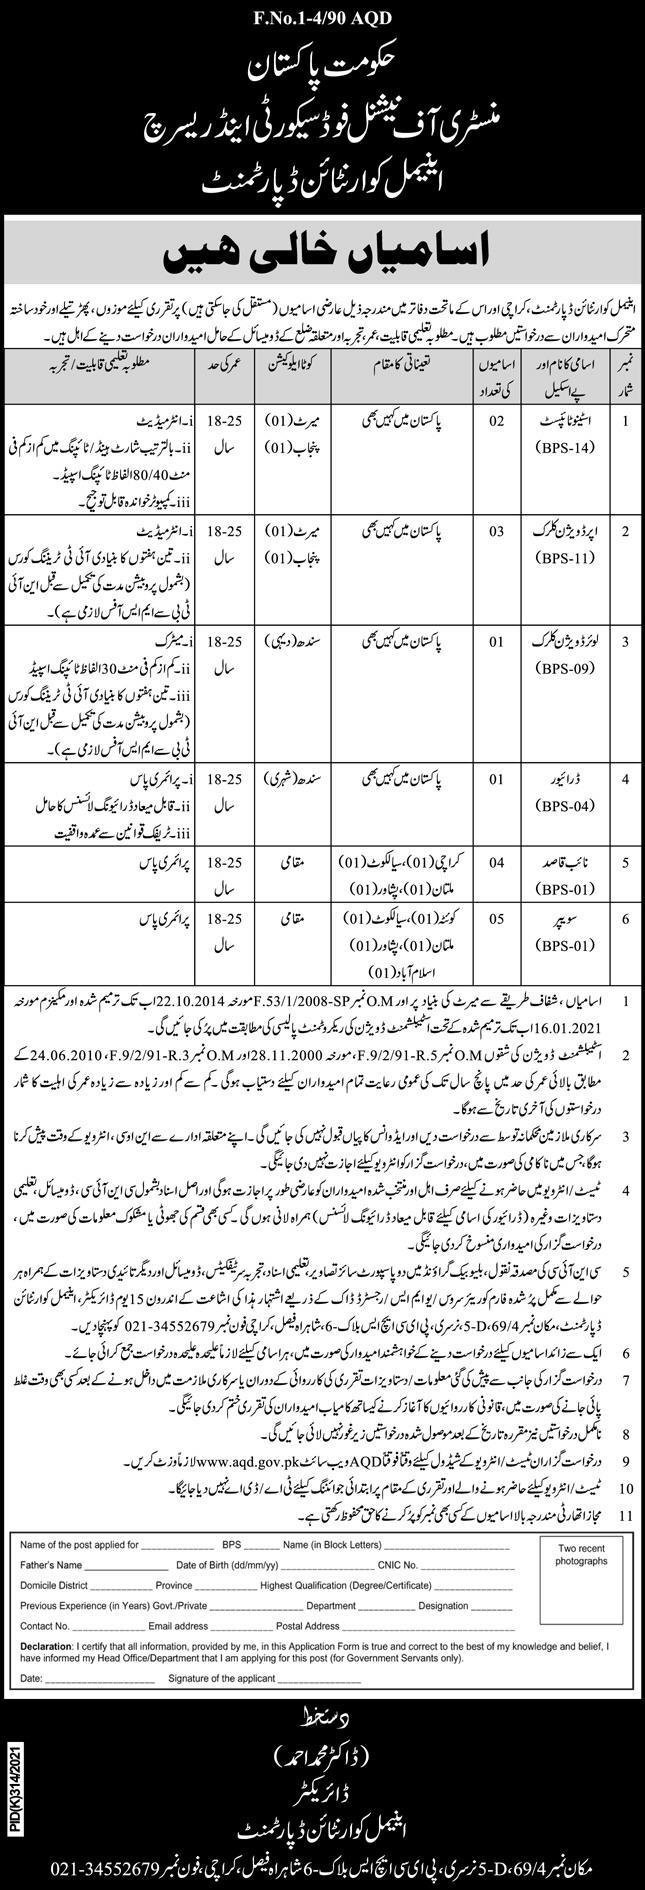 Ministry of National Food Security and Research Jobs August 2021